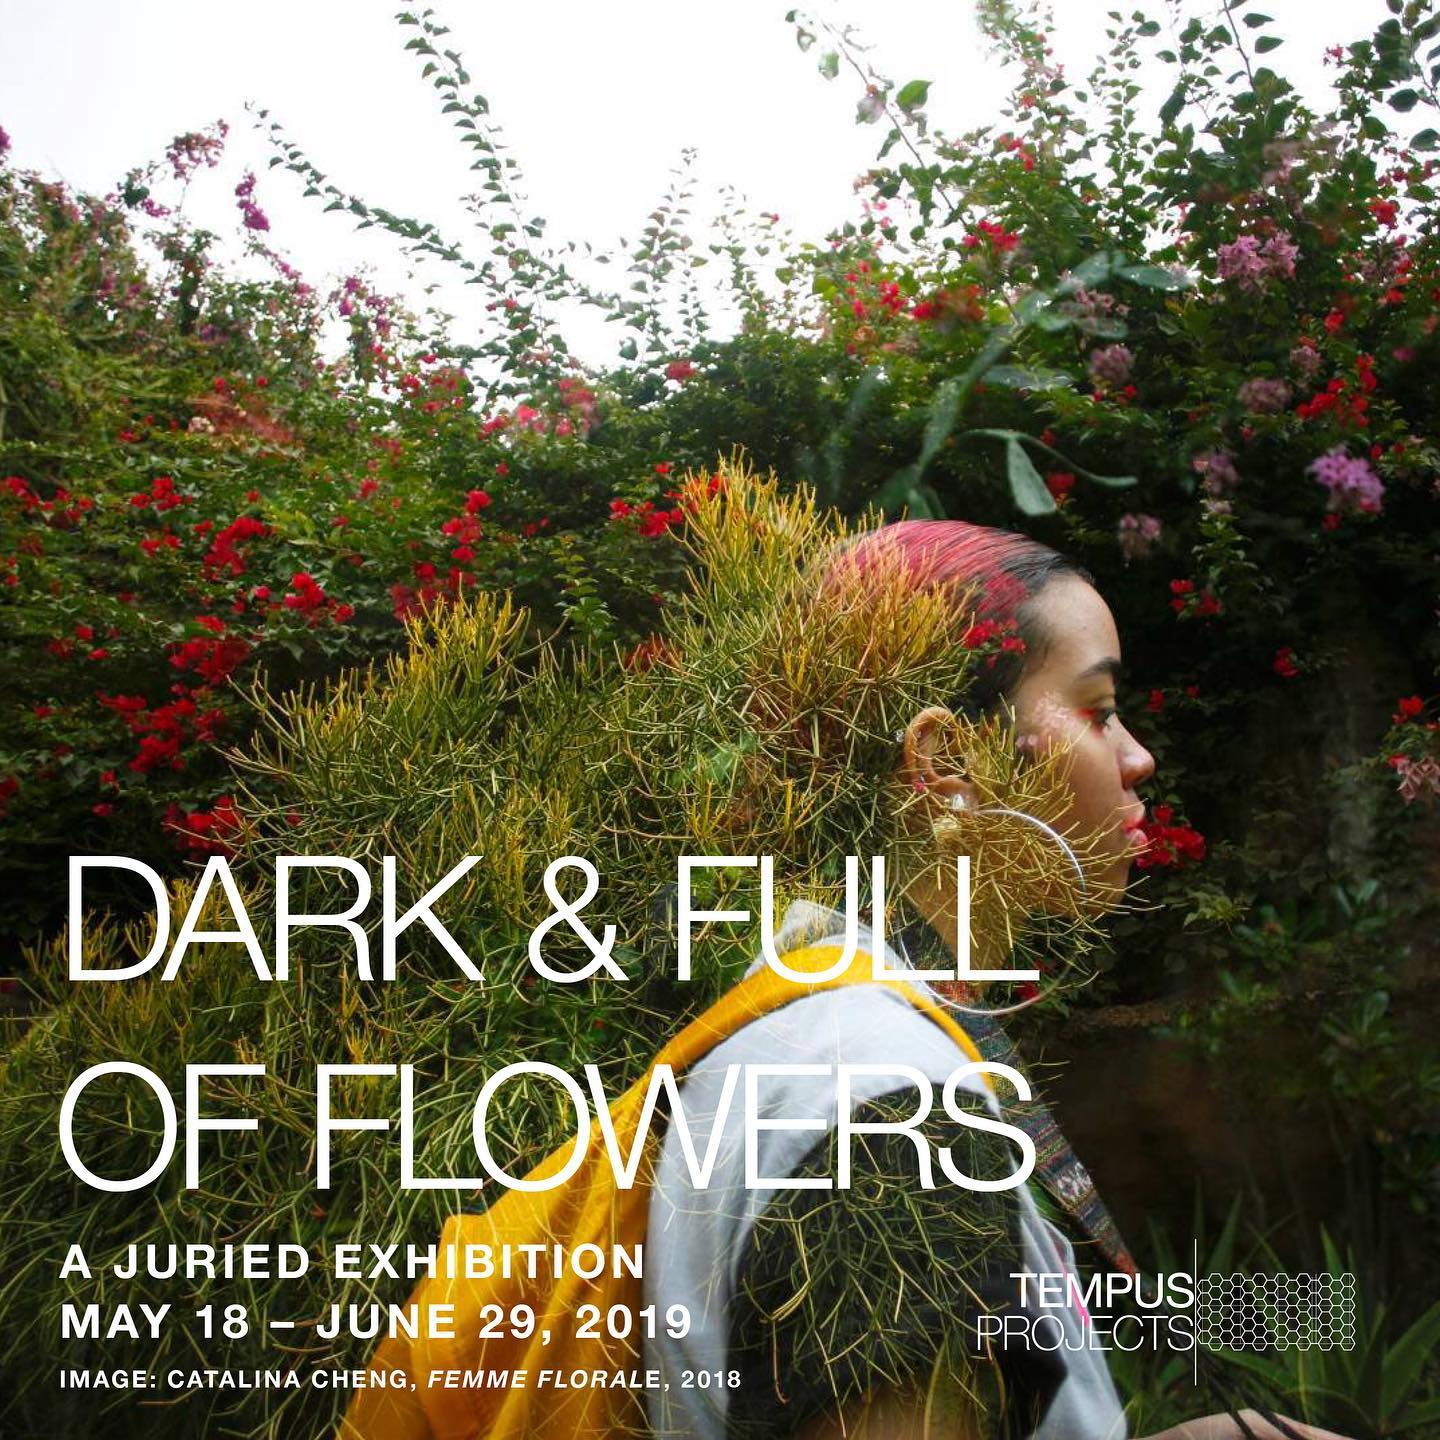 darkfullofflowers_tempus2019.jpg